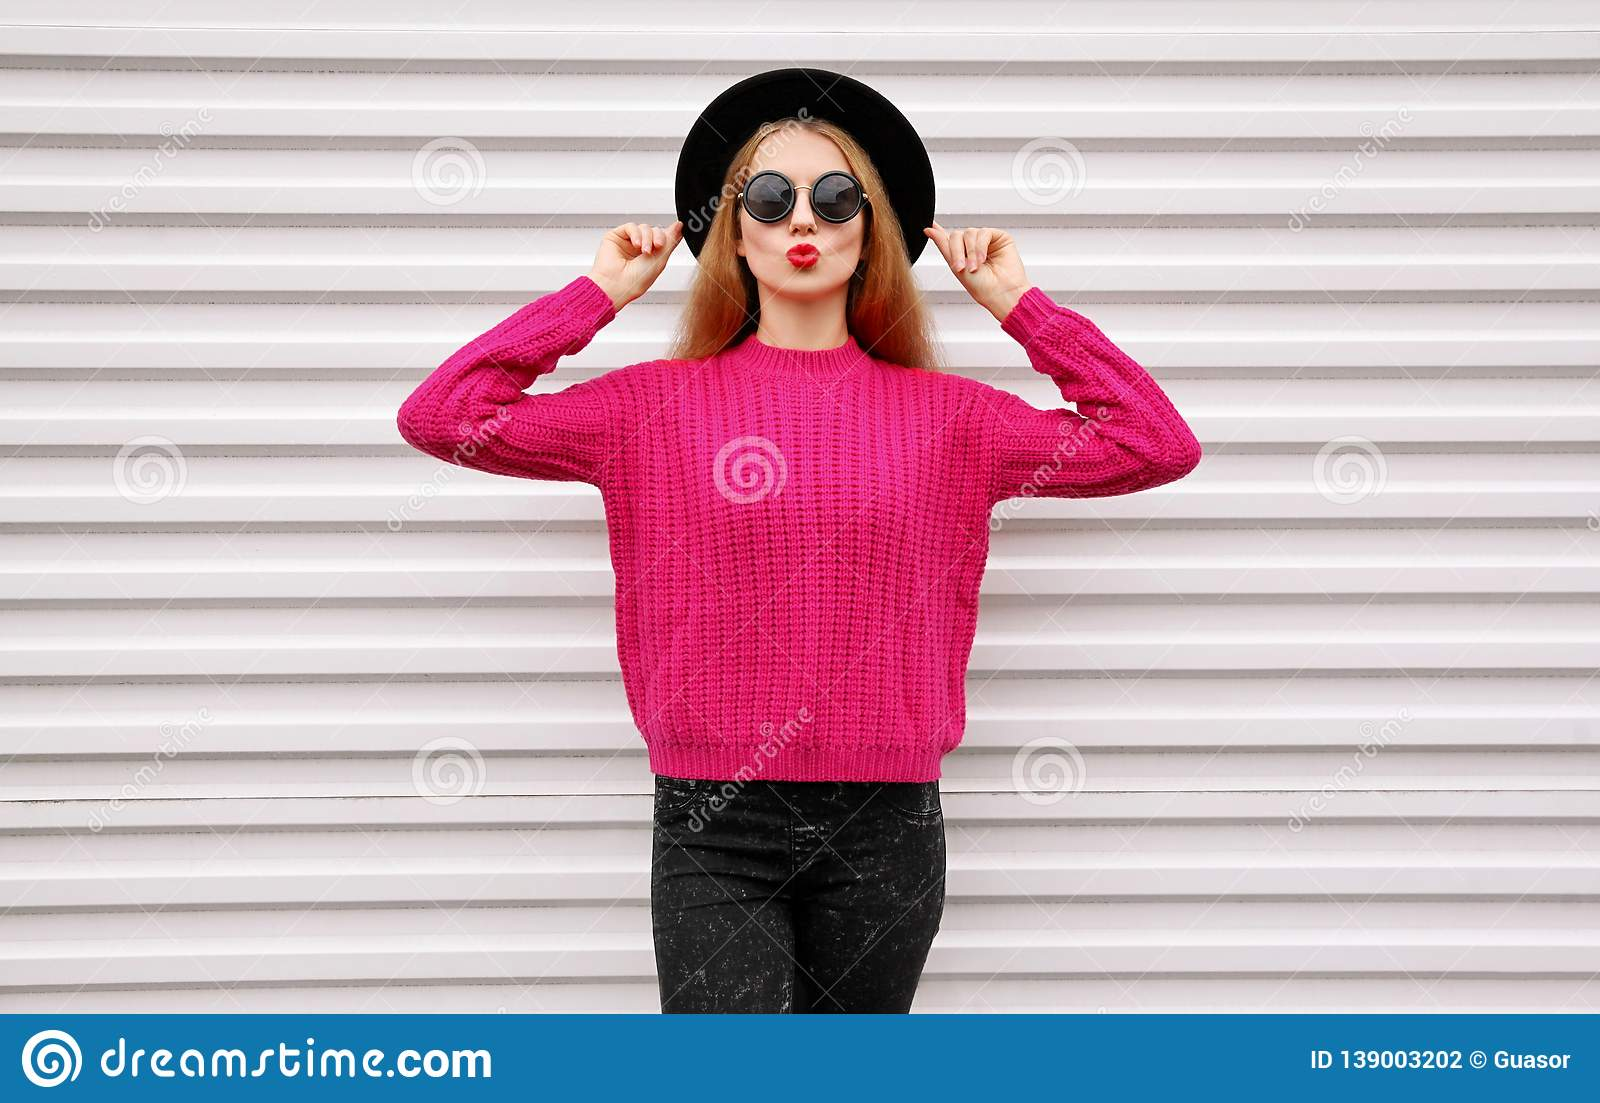 Beautiful young woman blowing red lips sending sweet air kiss in colorful pink knitted sweater